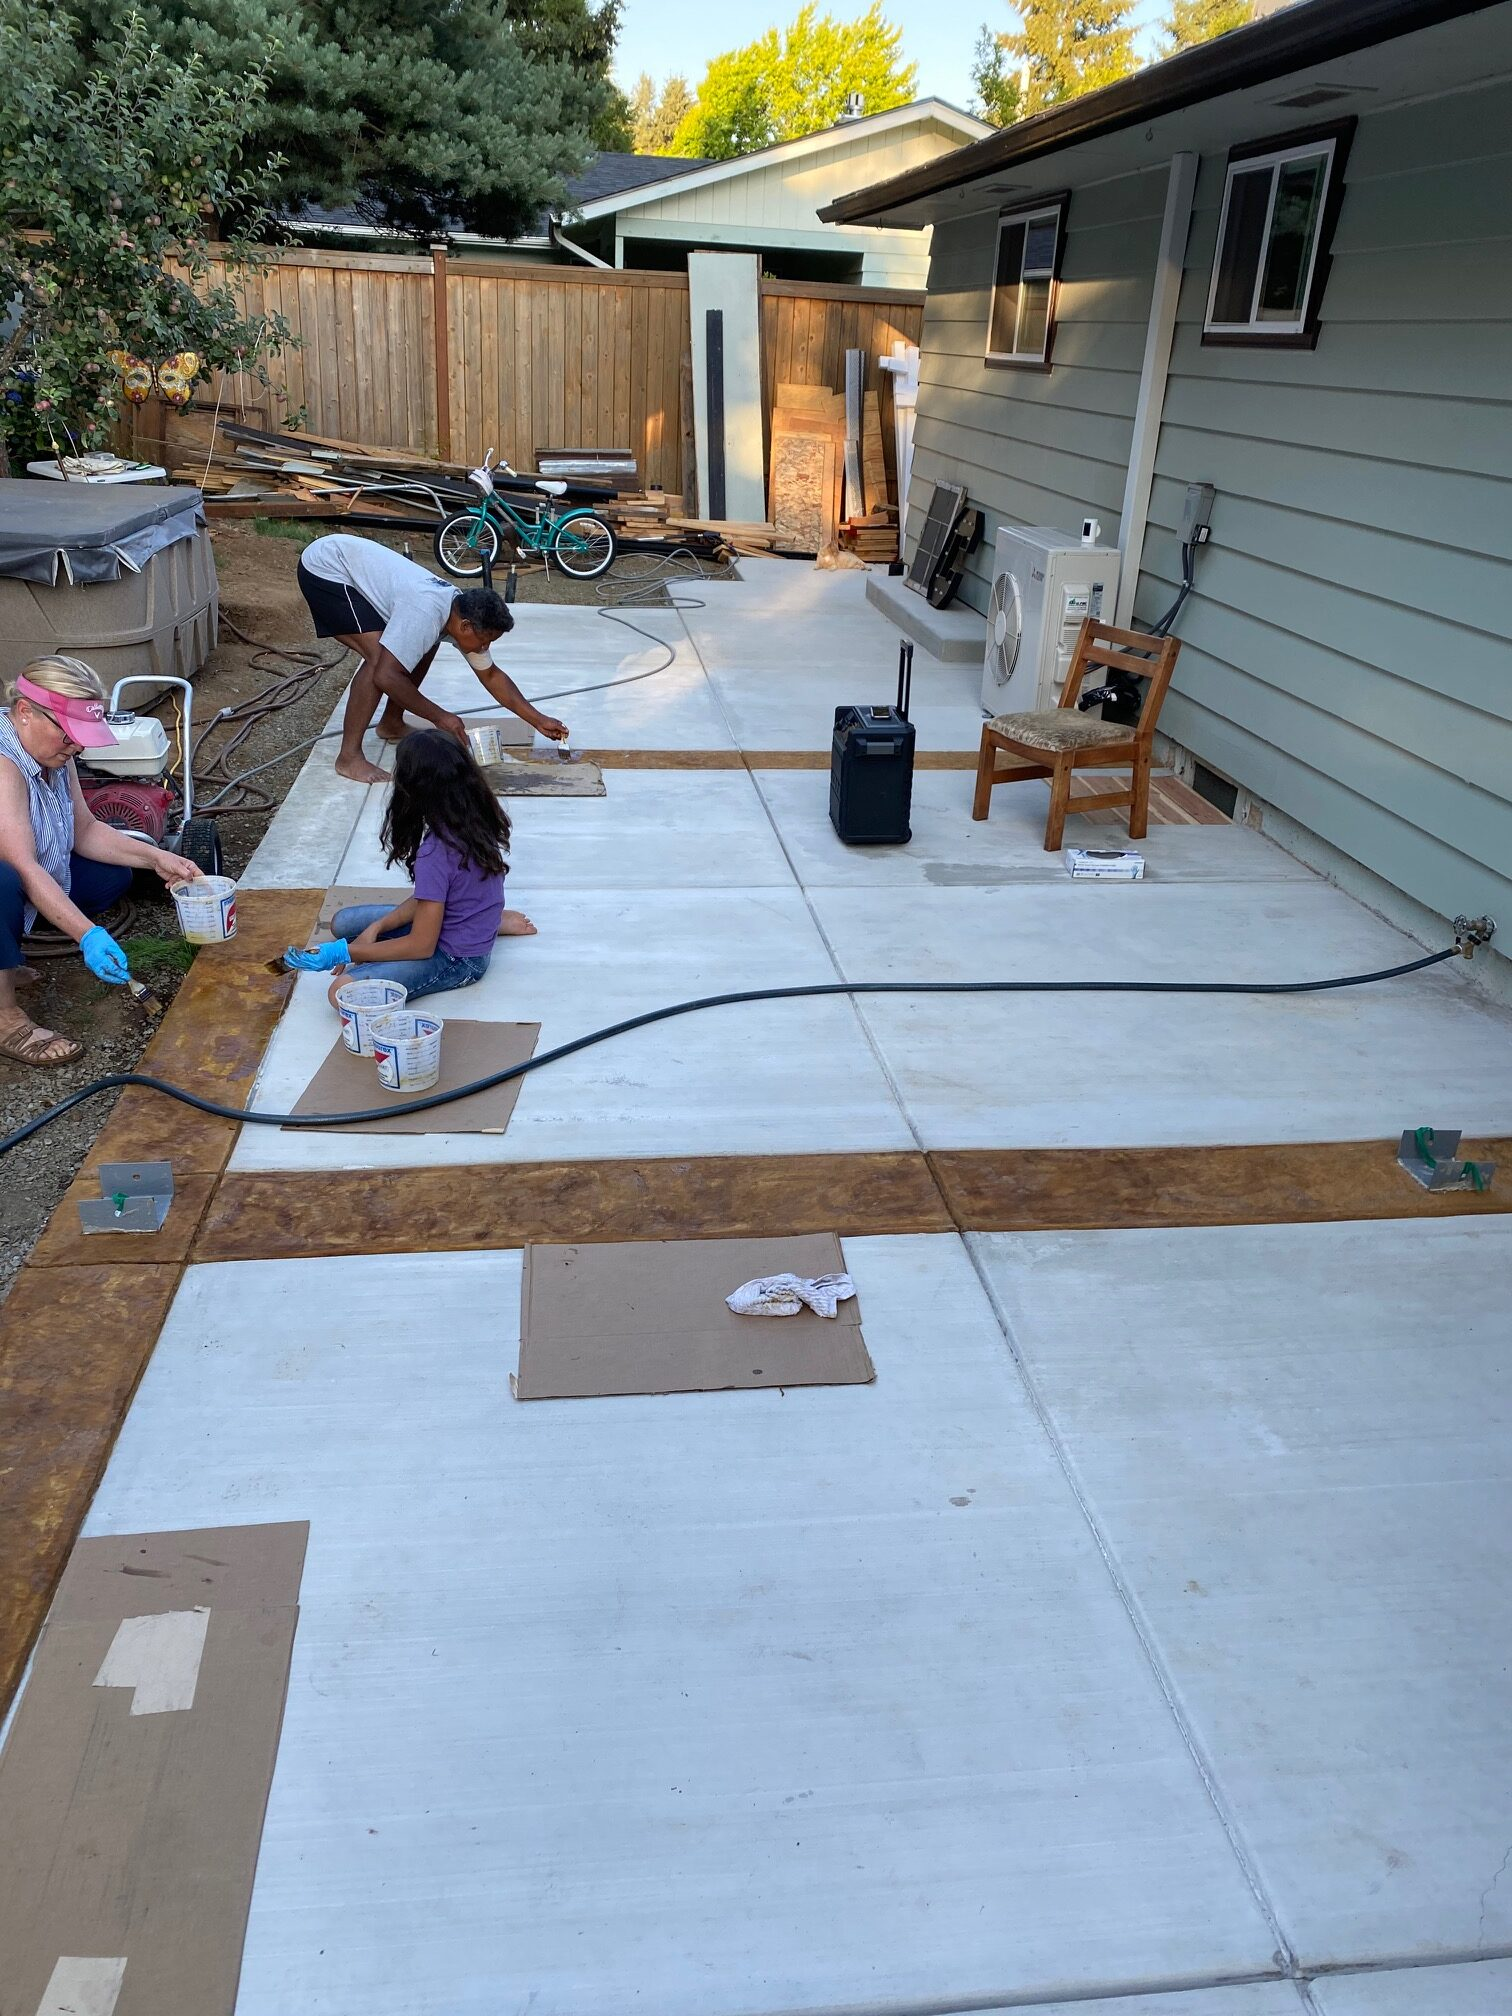 the homeowners staining and texturing the borders of the concrete patio